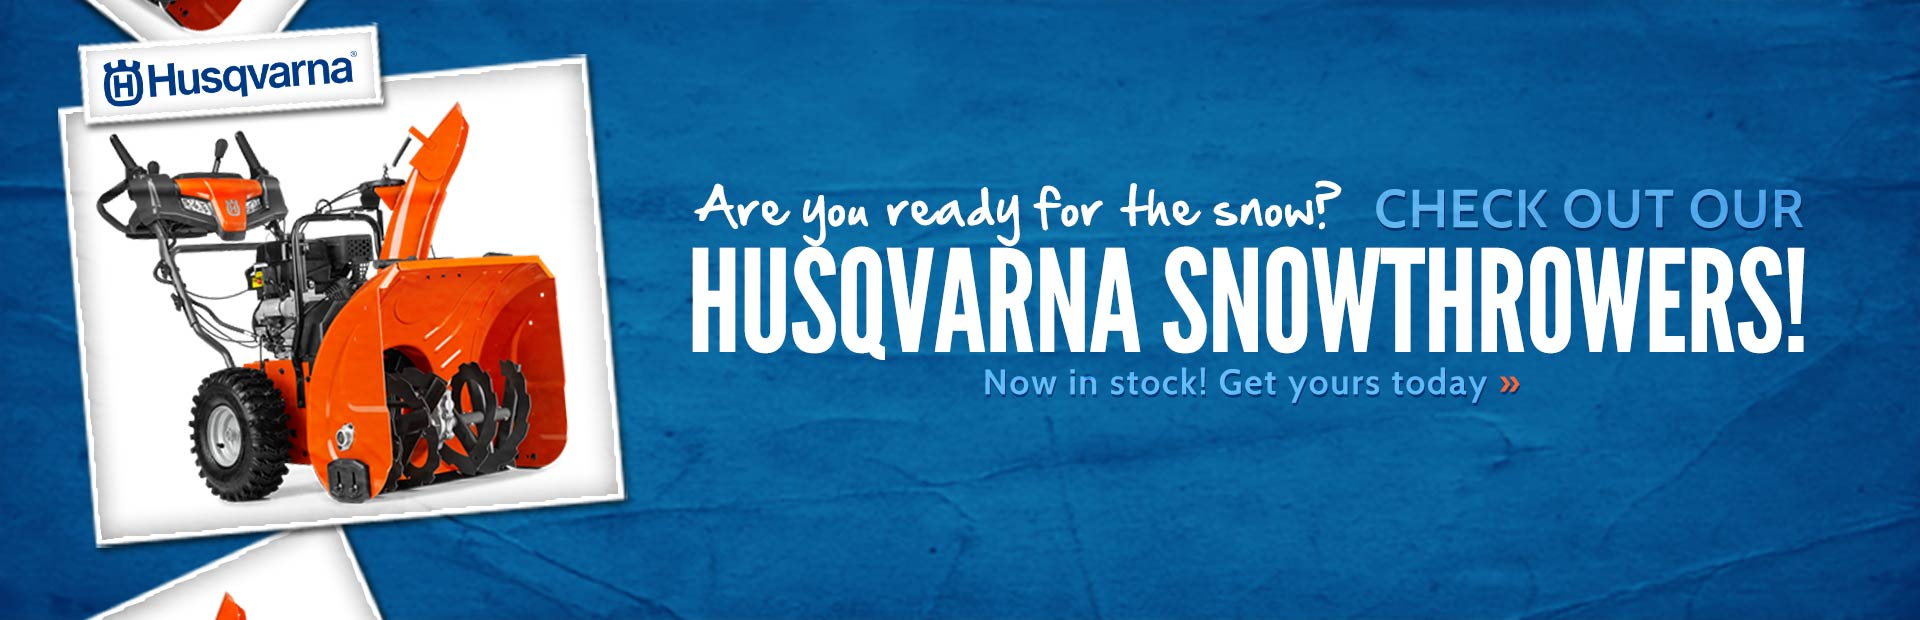 Click here to view Husqvarna snowthrowers.